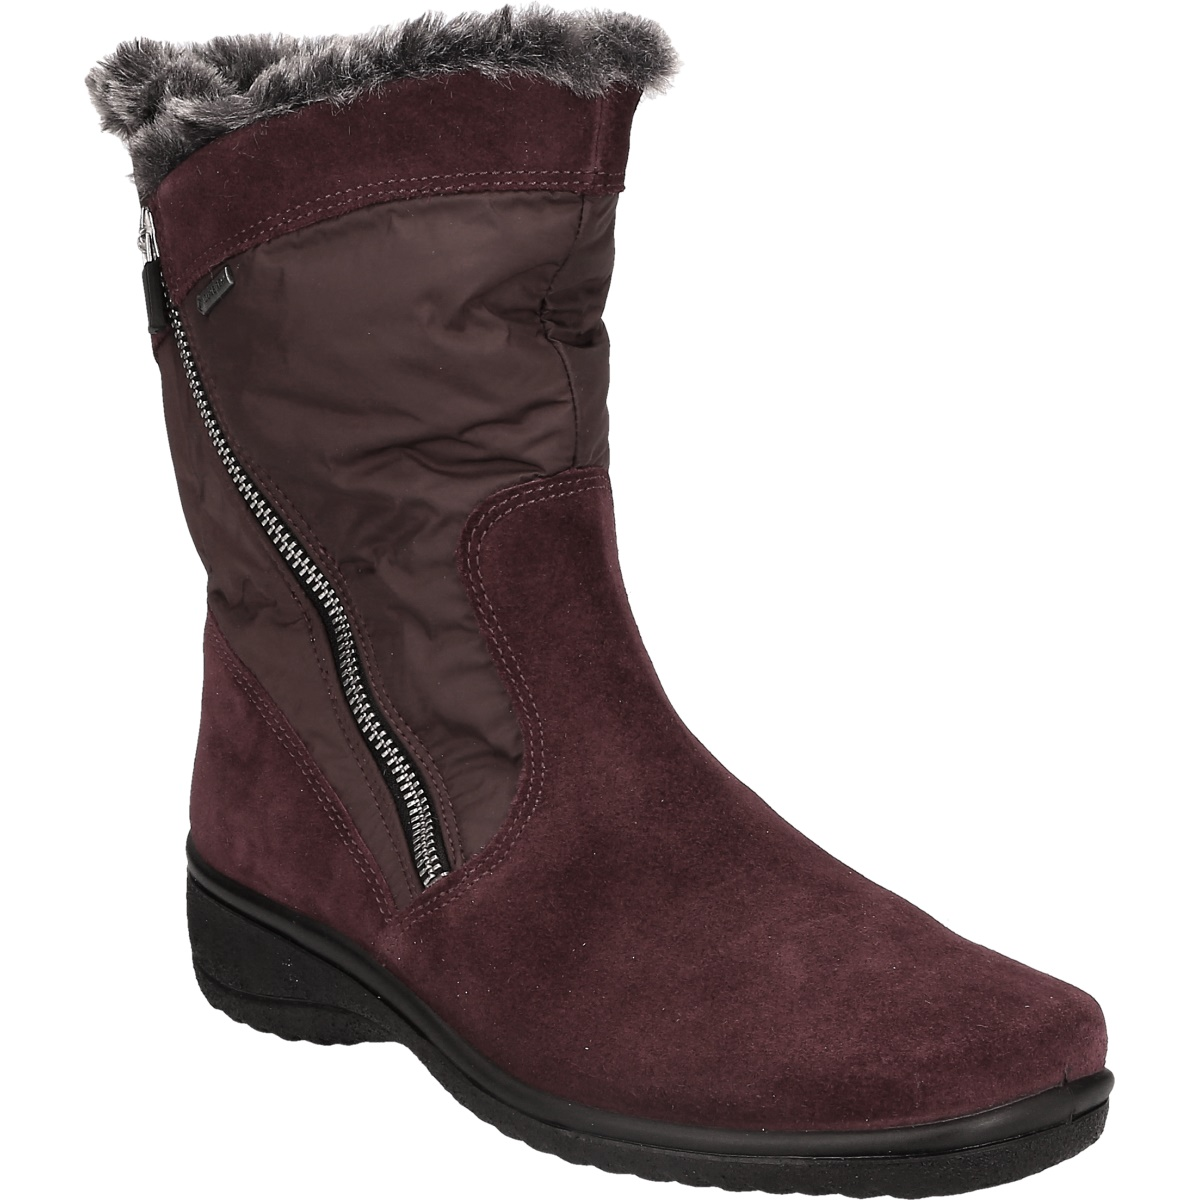 uk availability 24a1c 16b76 Ara 48562-65 Women's shoes Half-boots buy shoes at our ...